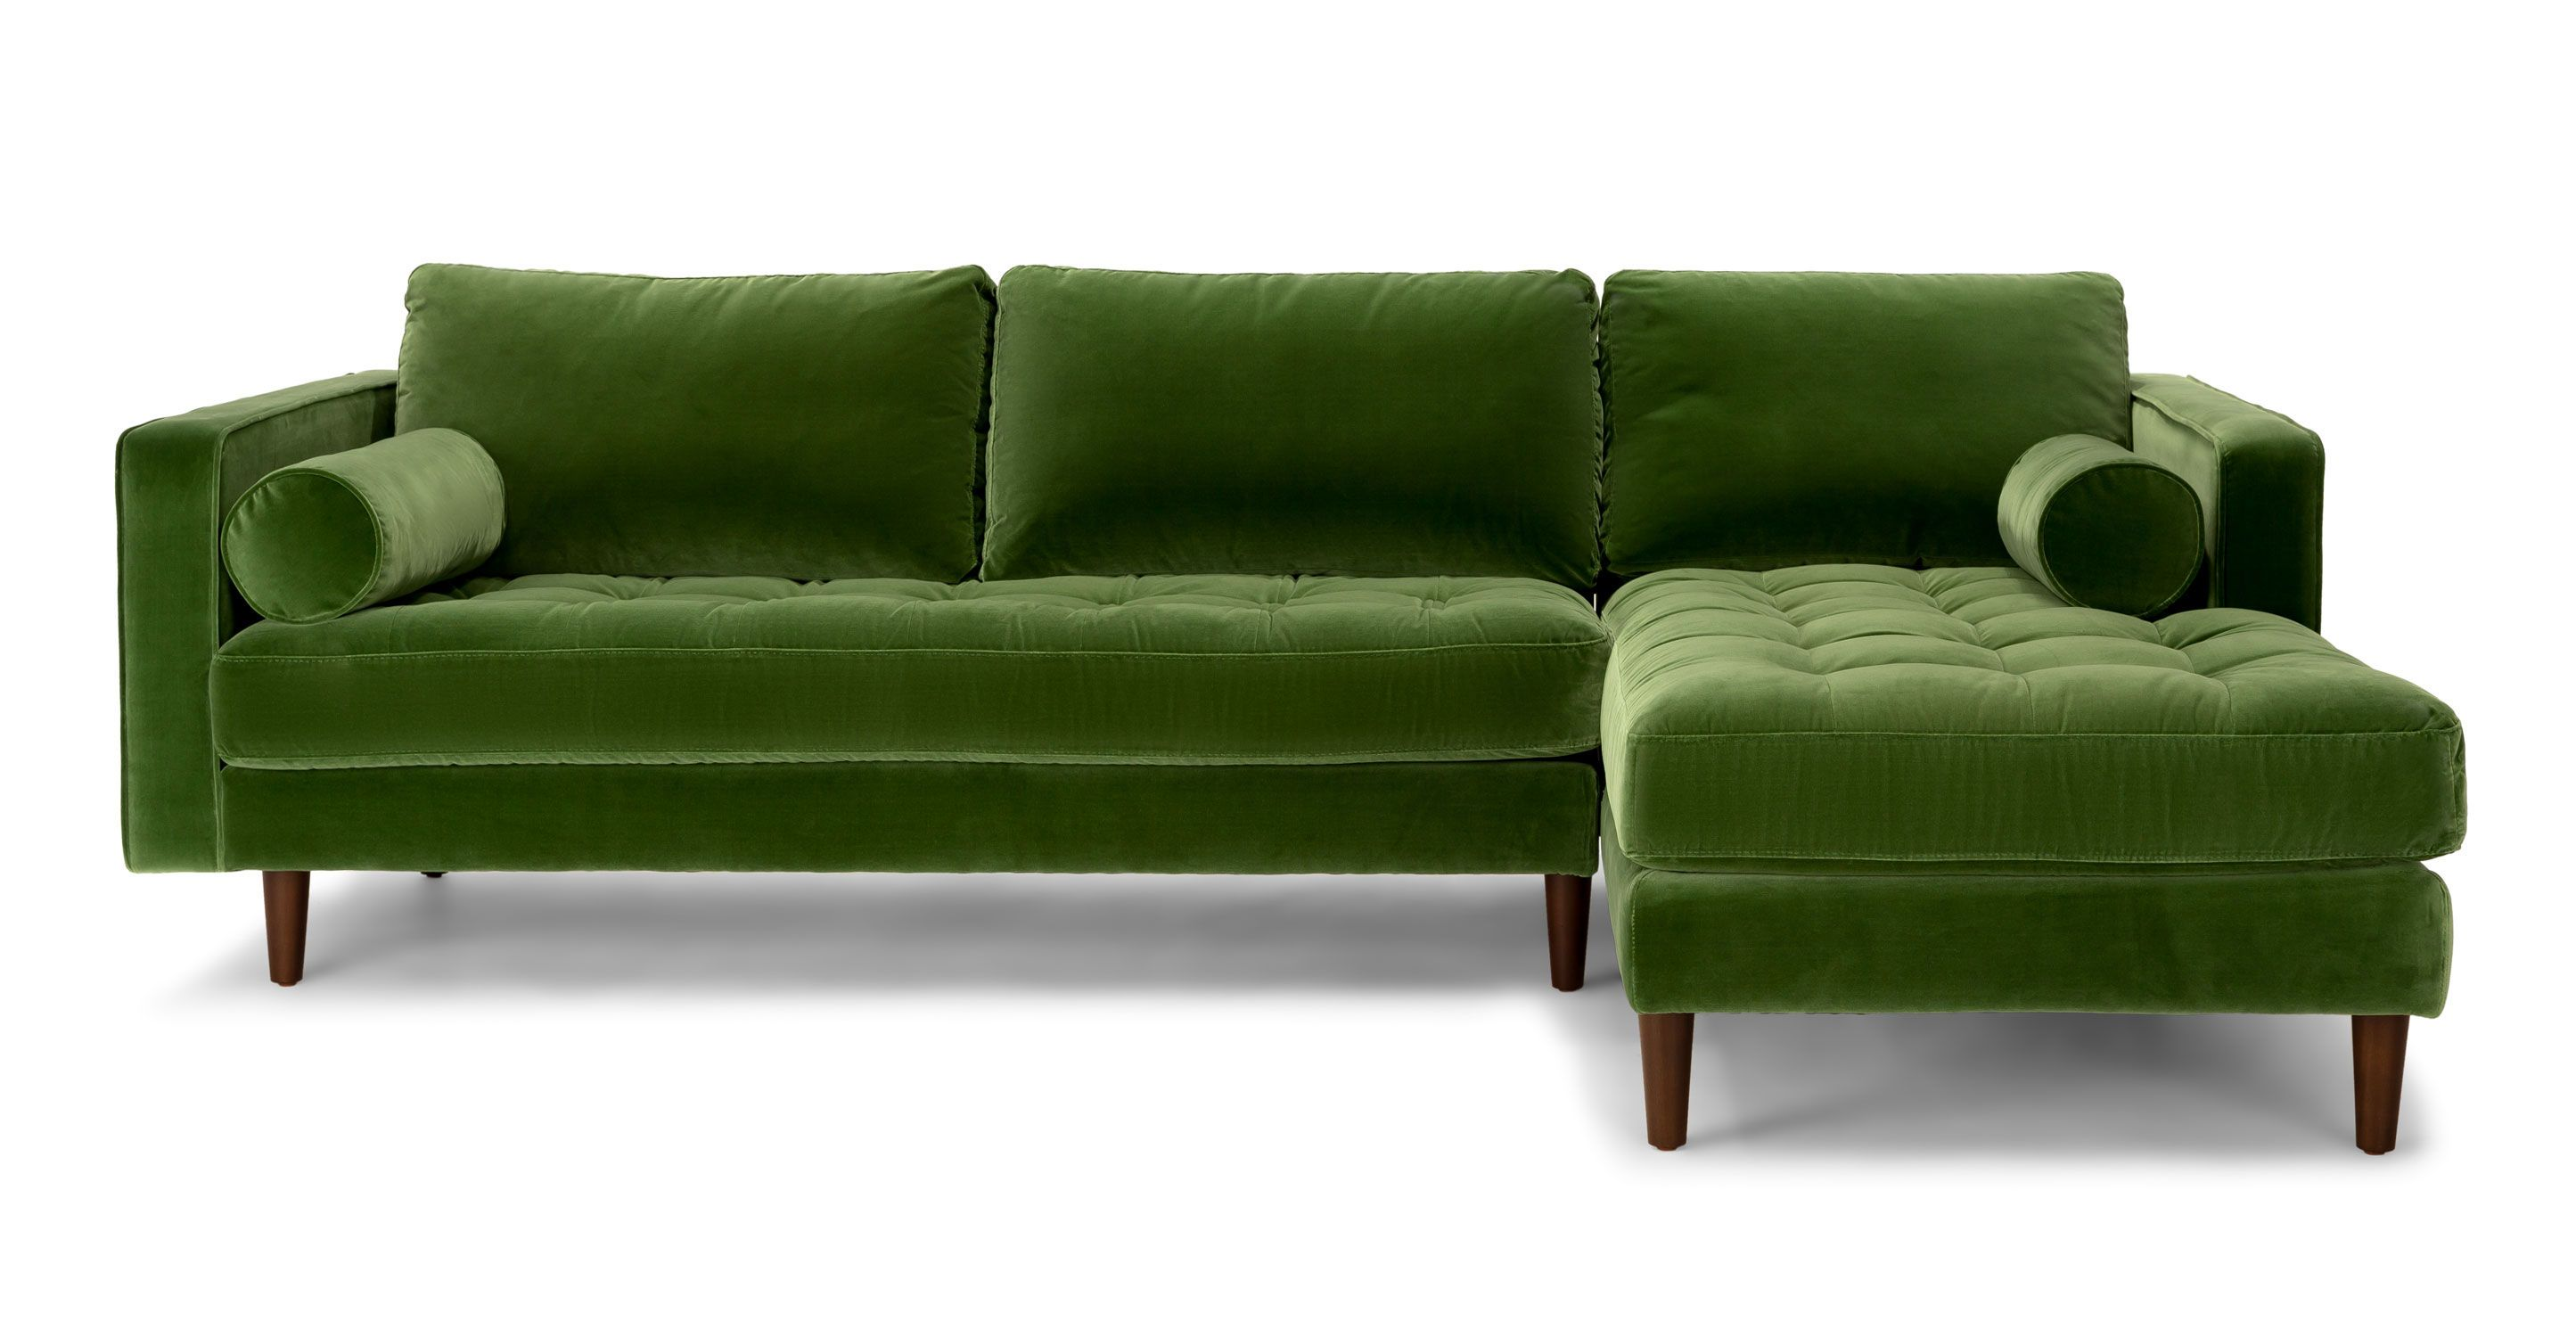 Sven grass green right sectional sofa sectionals article modern mid century and scandinavian furniture